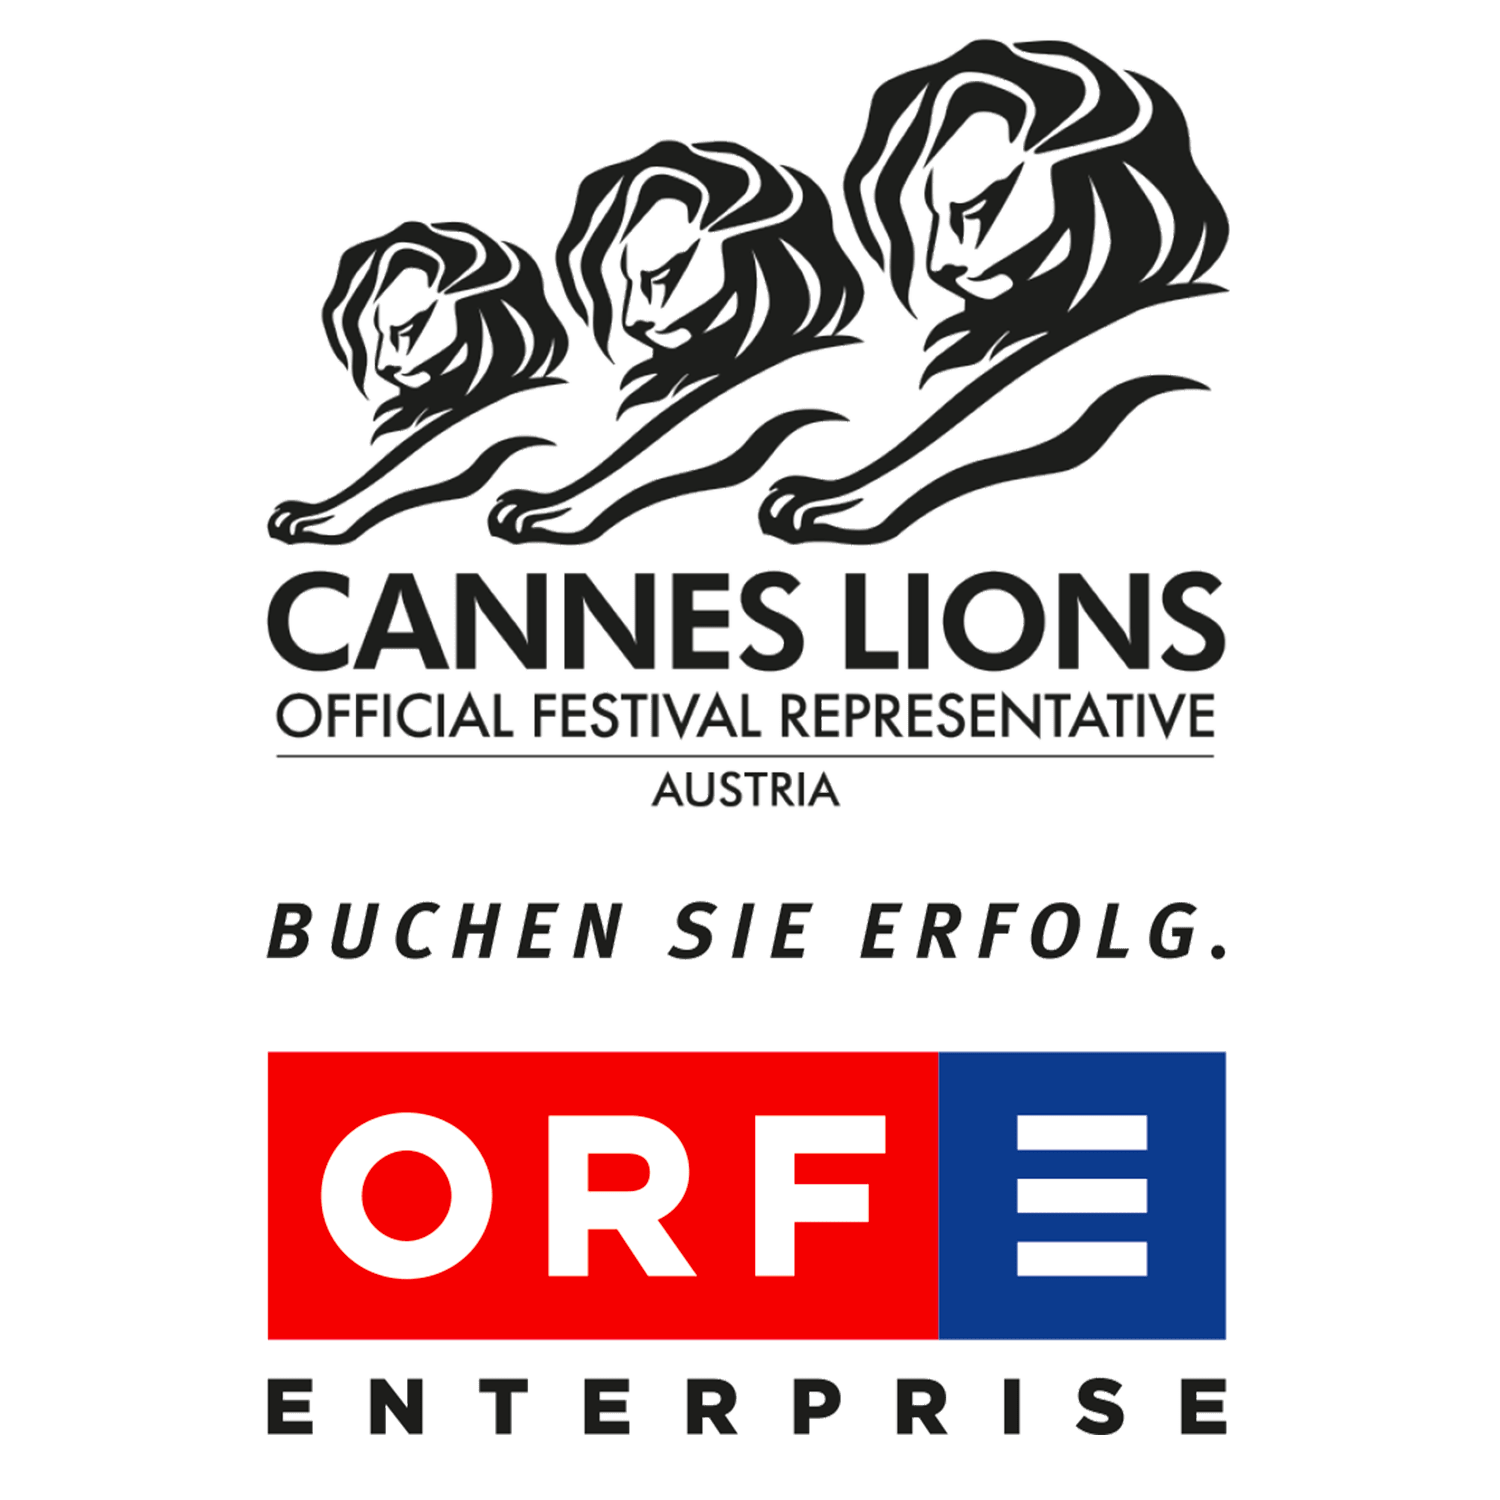 Cannes-Lions-Festival-ORF-Logo